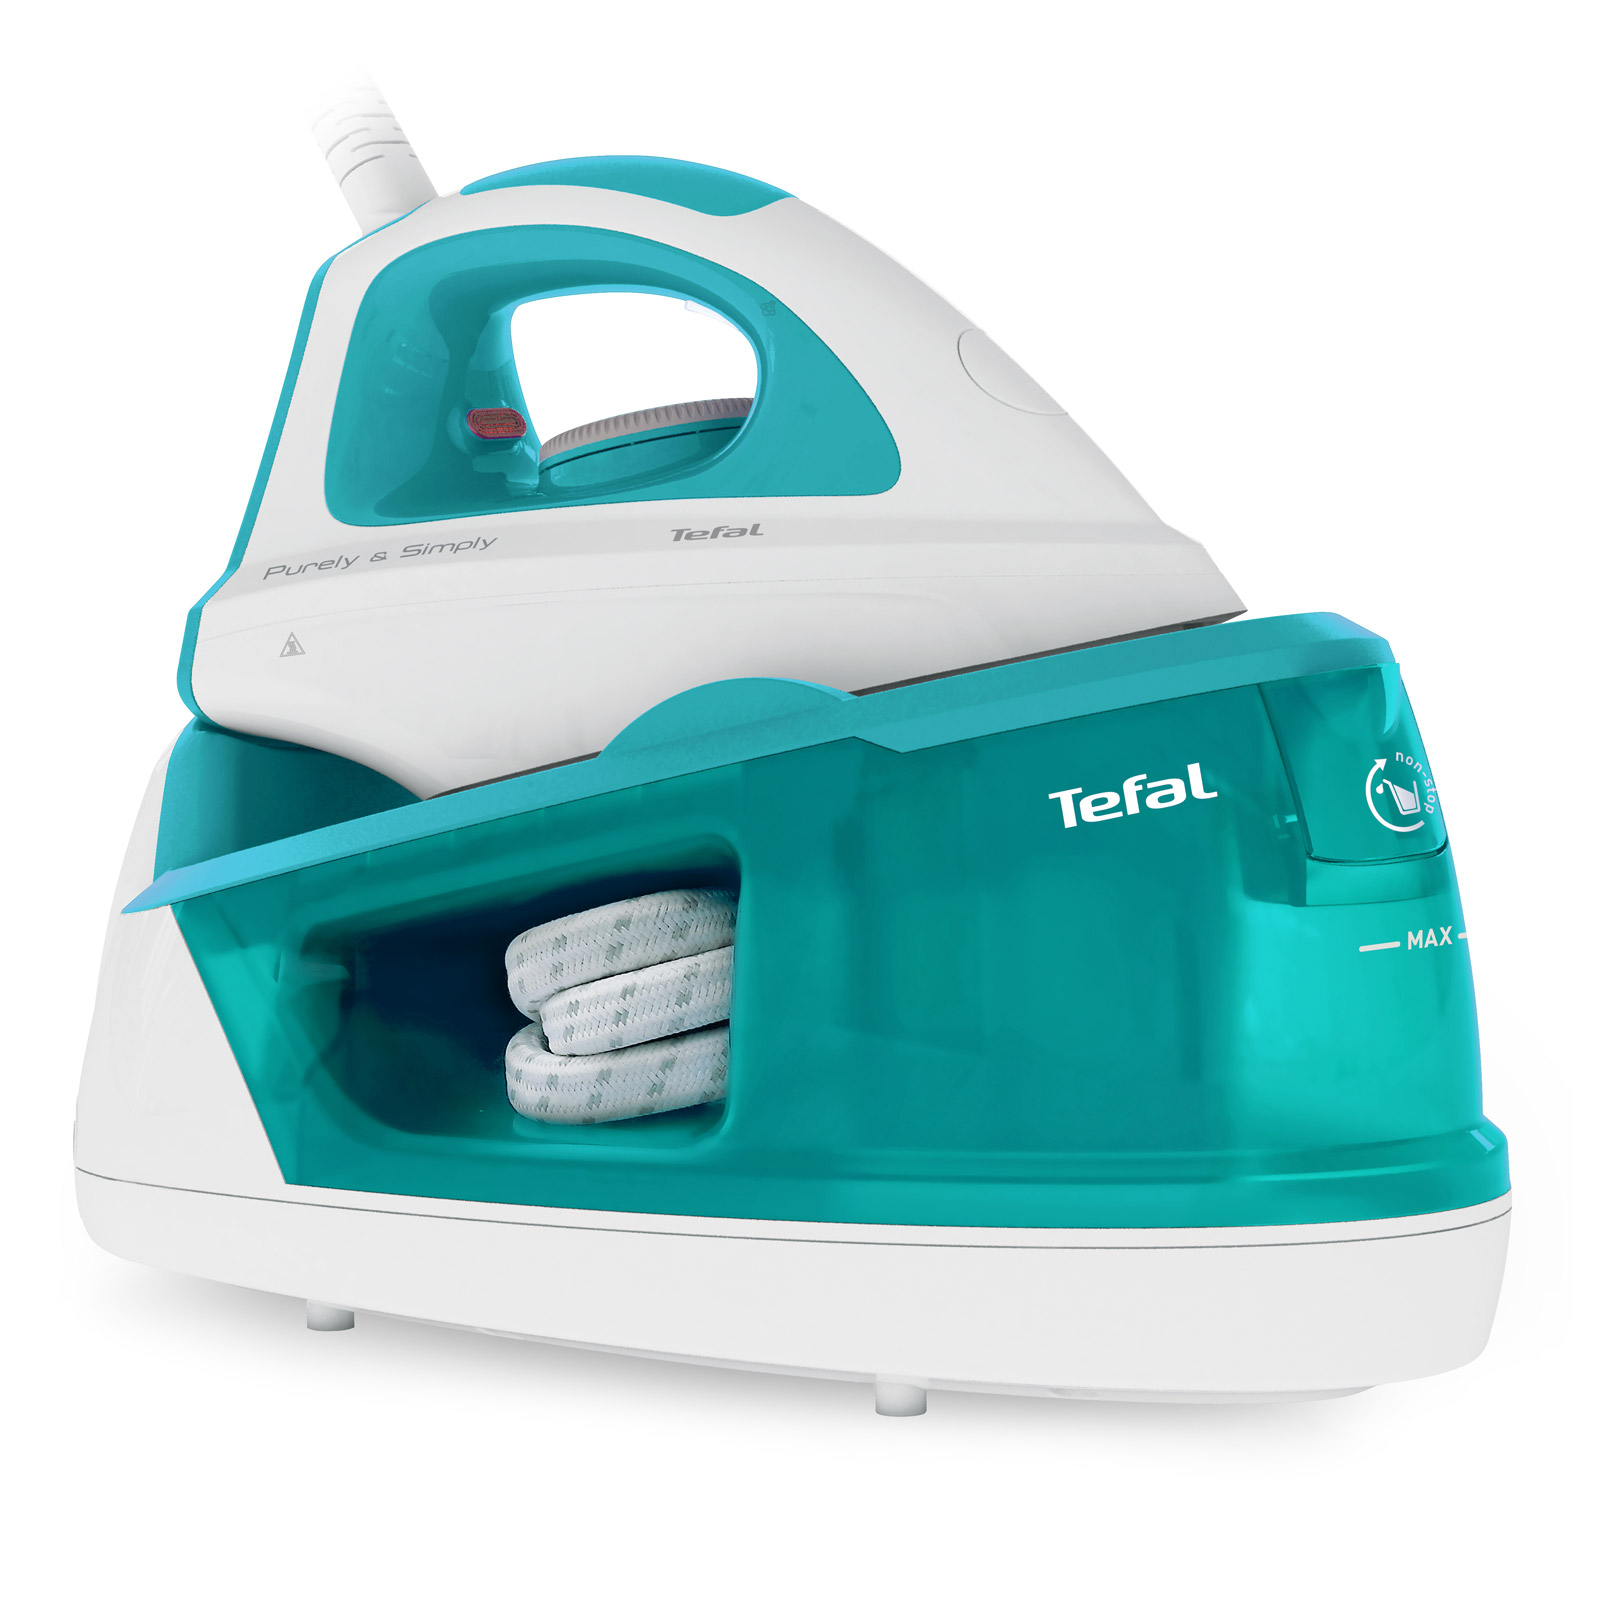 Tefal SV5011 pact Steam Generator Iron 5 0 Bar